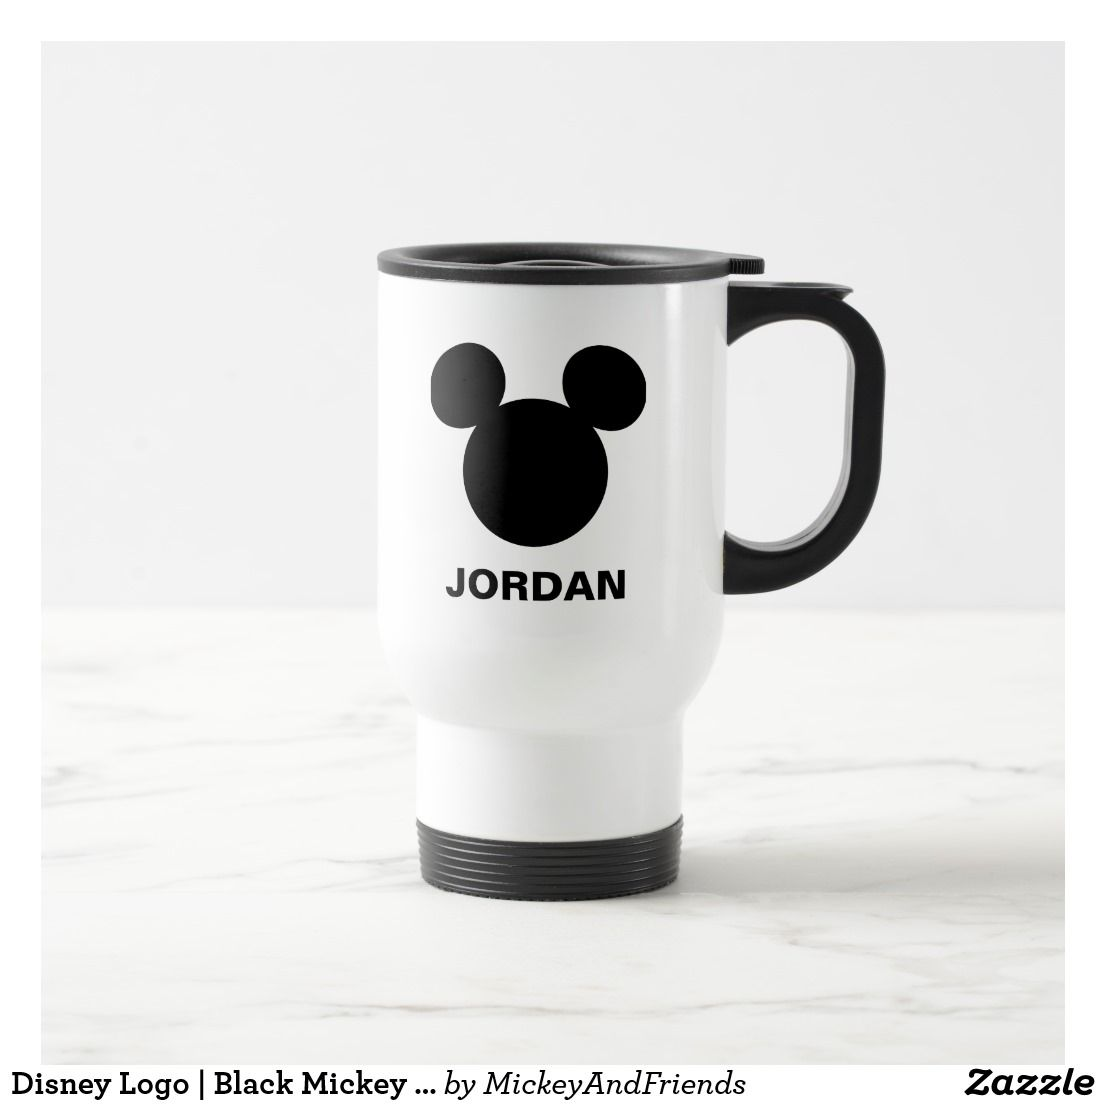 Disney Logo Black Mickey Icon